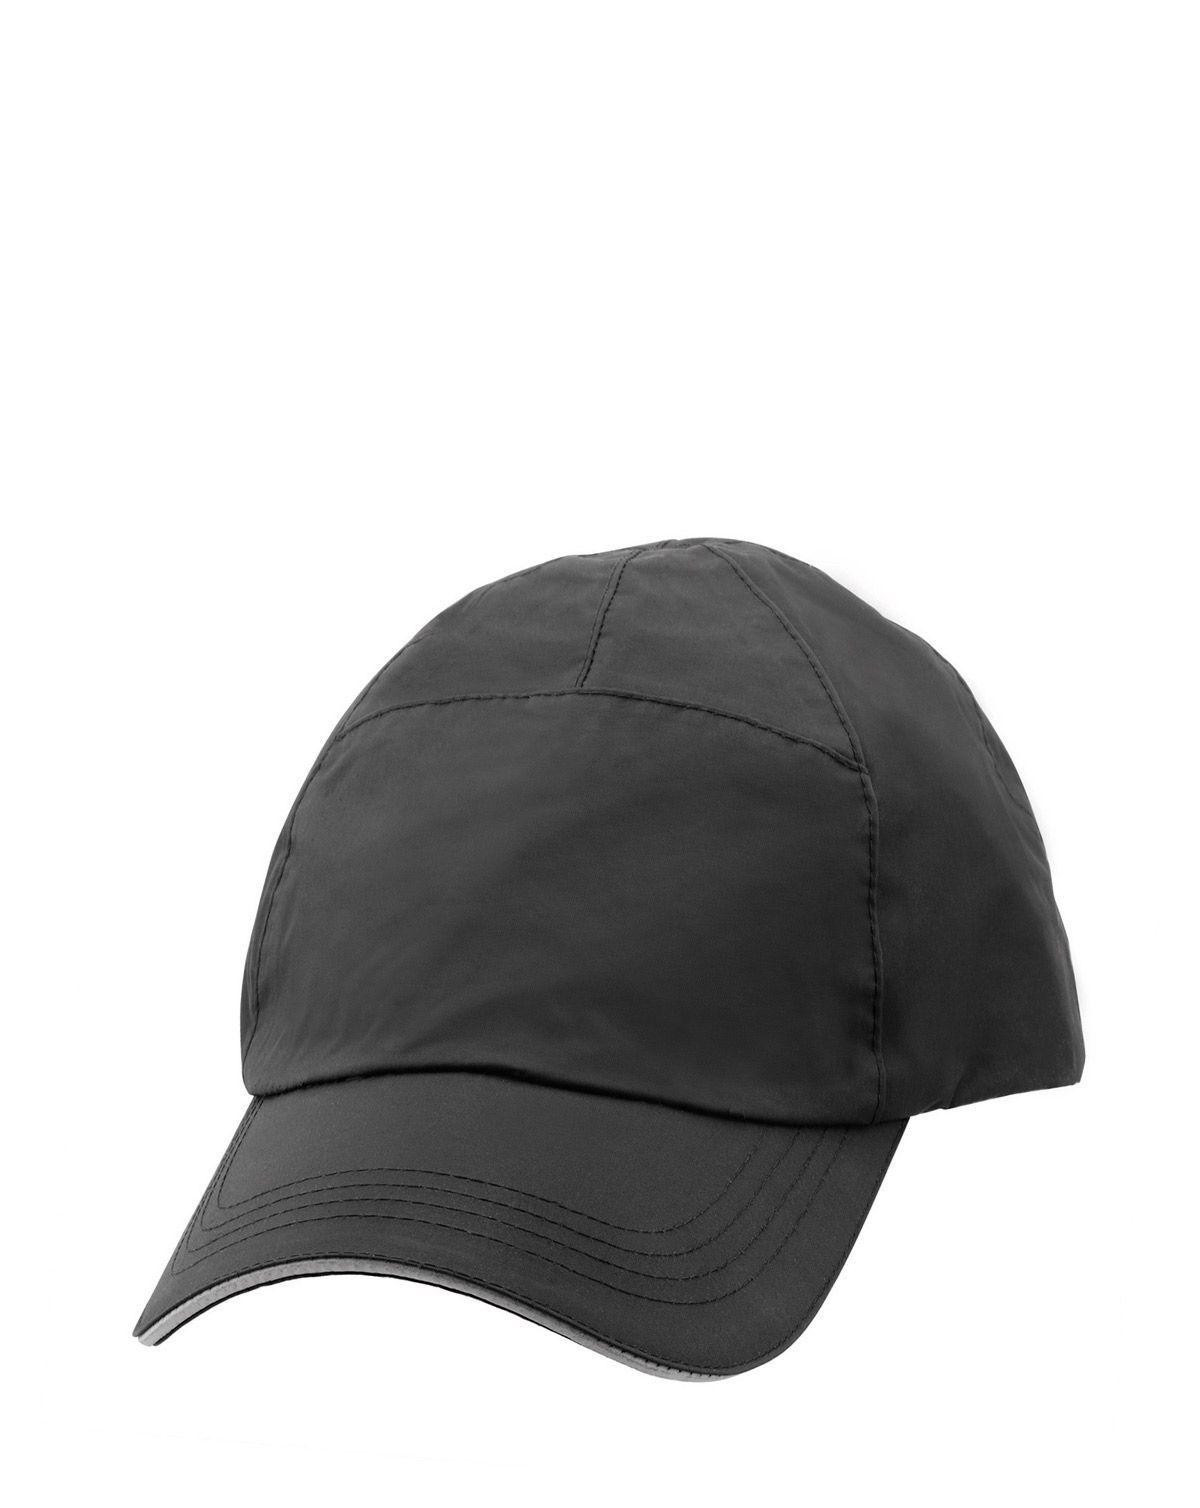 Image of   FHB Cap, Vandtæt - Niklas (Sort, One Size)